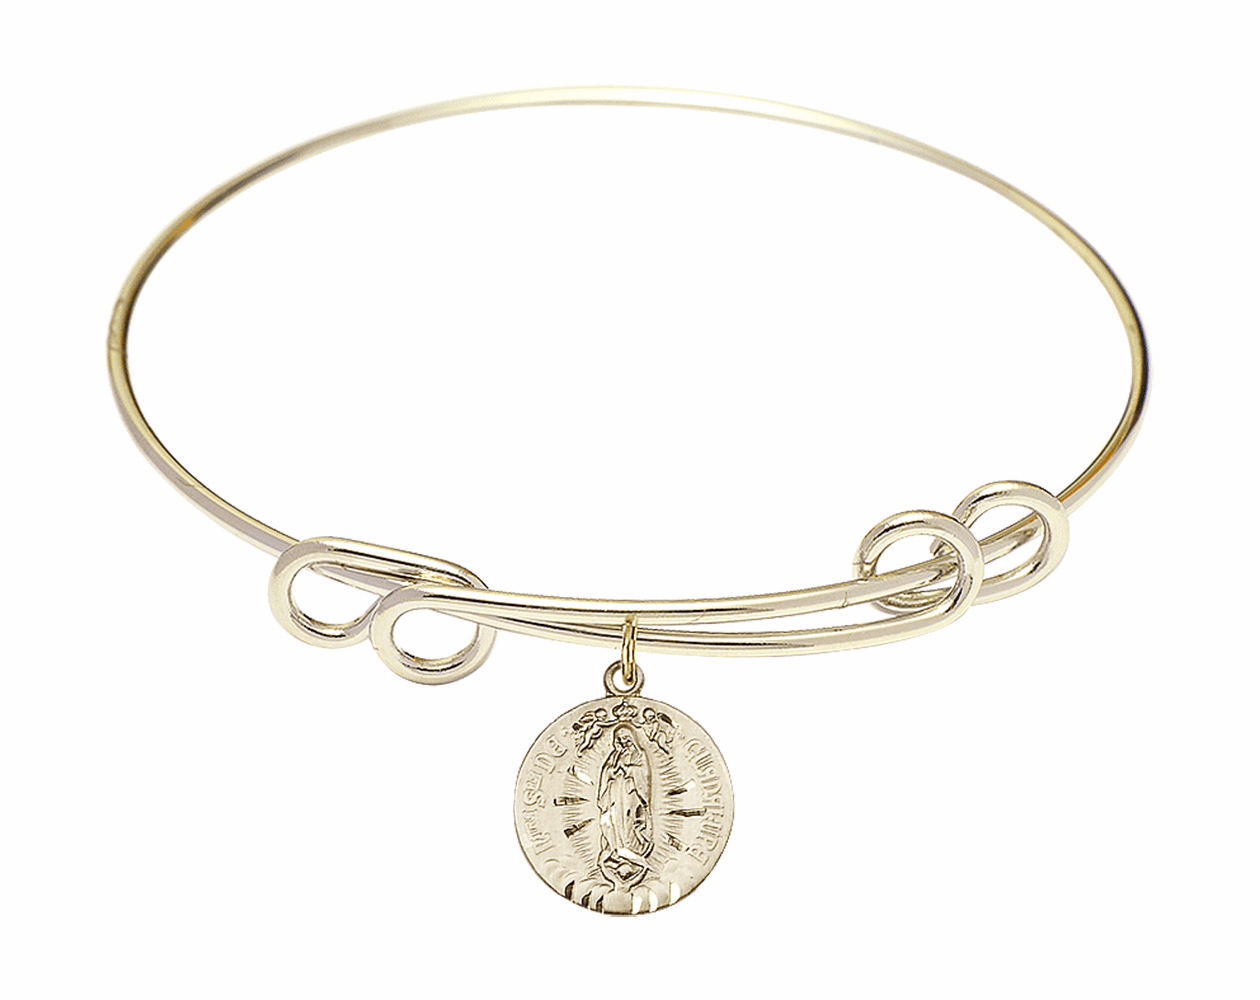 Round Double Loop Bangle Bracelet w/Our Lady of Guadalupe by Bliss Mfg